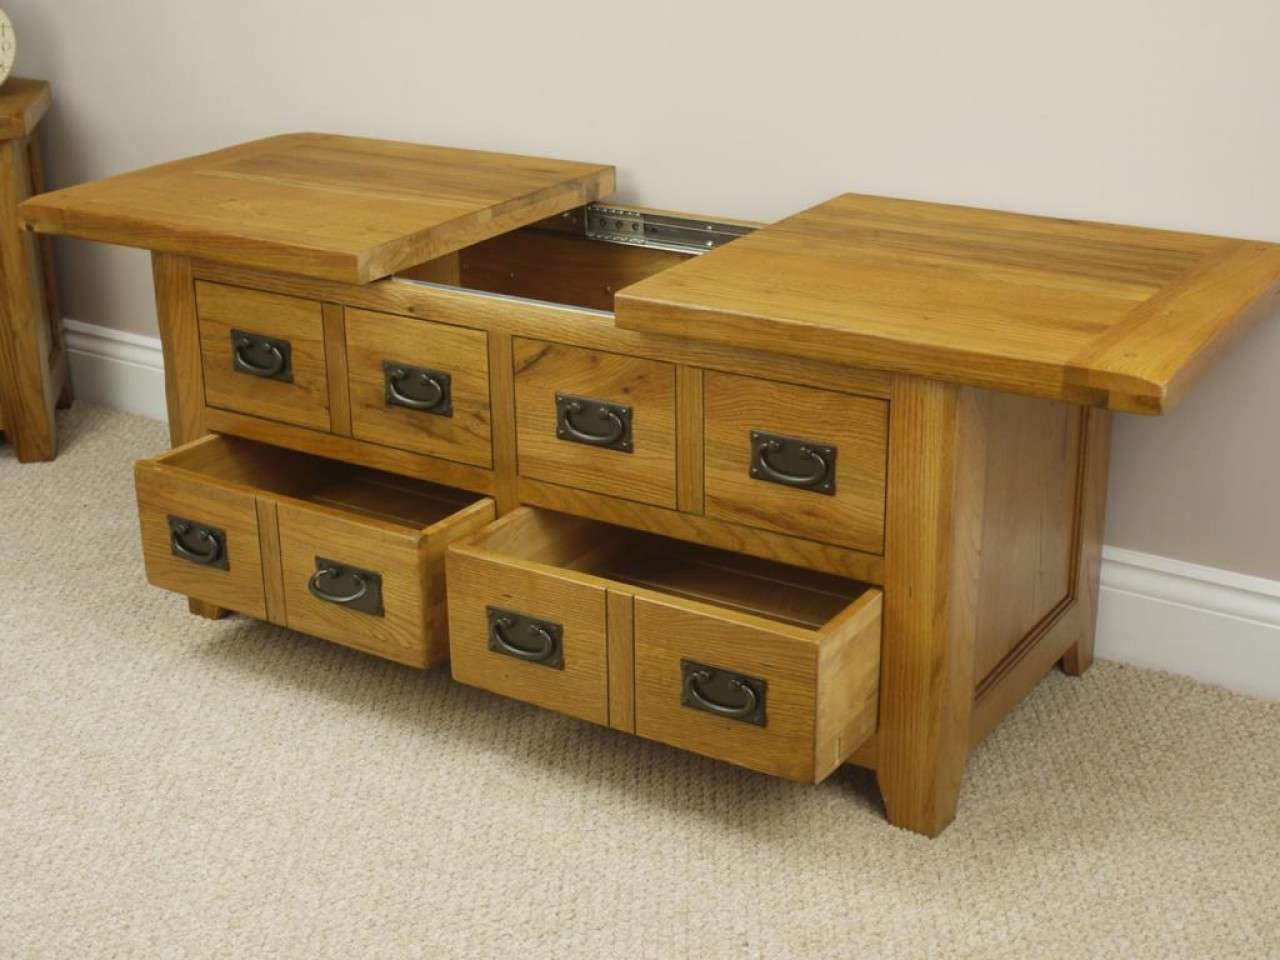 Rustic Storage Coffee Table Style — Home Design Ideas Intended For Recent Square Coffee Tables With Storage (View 19 of 20)